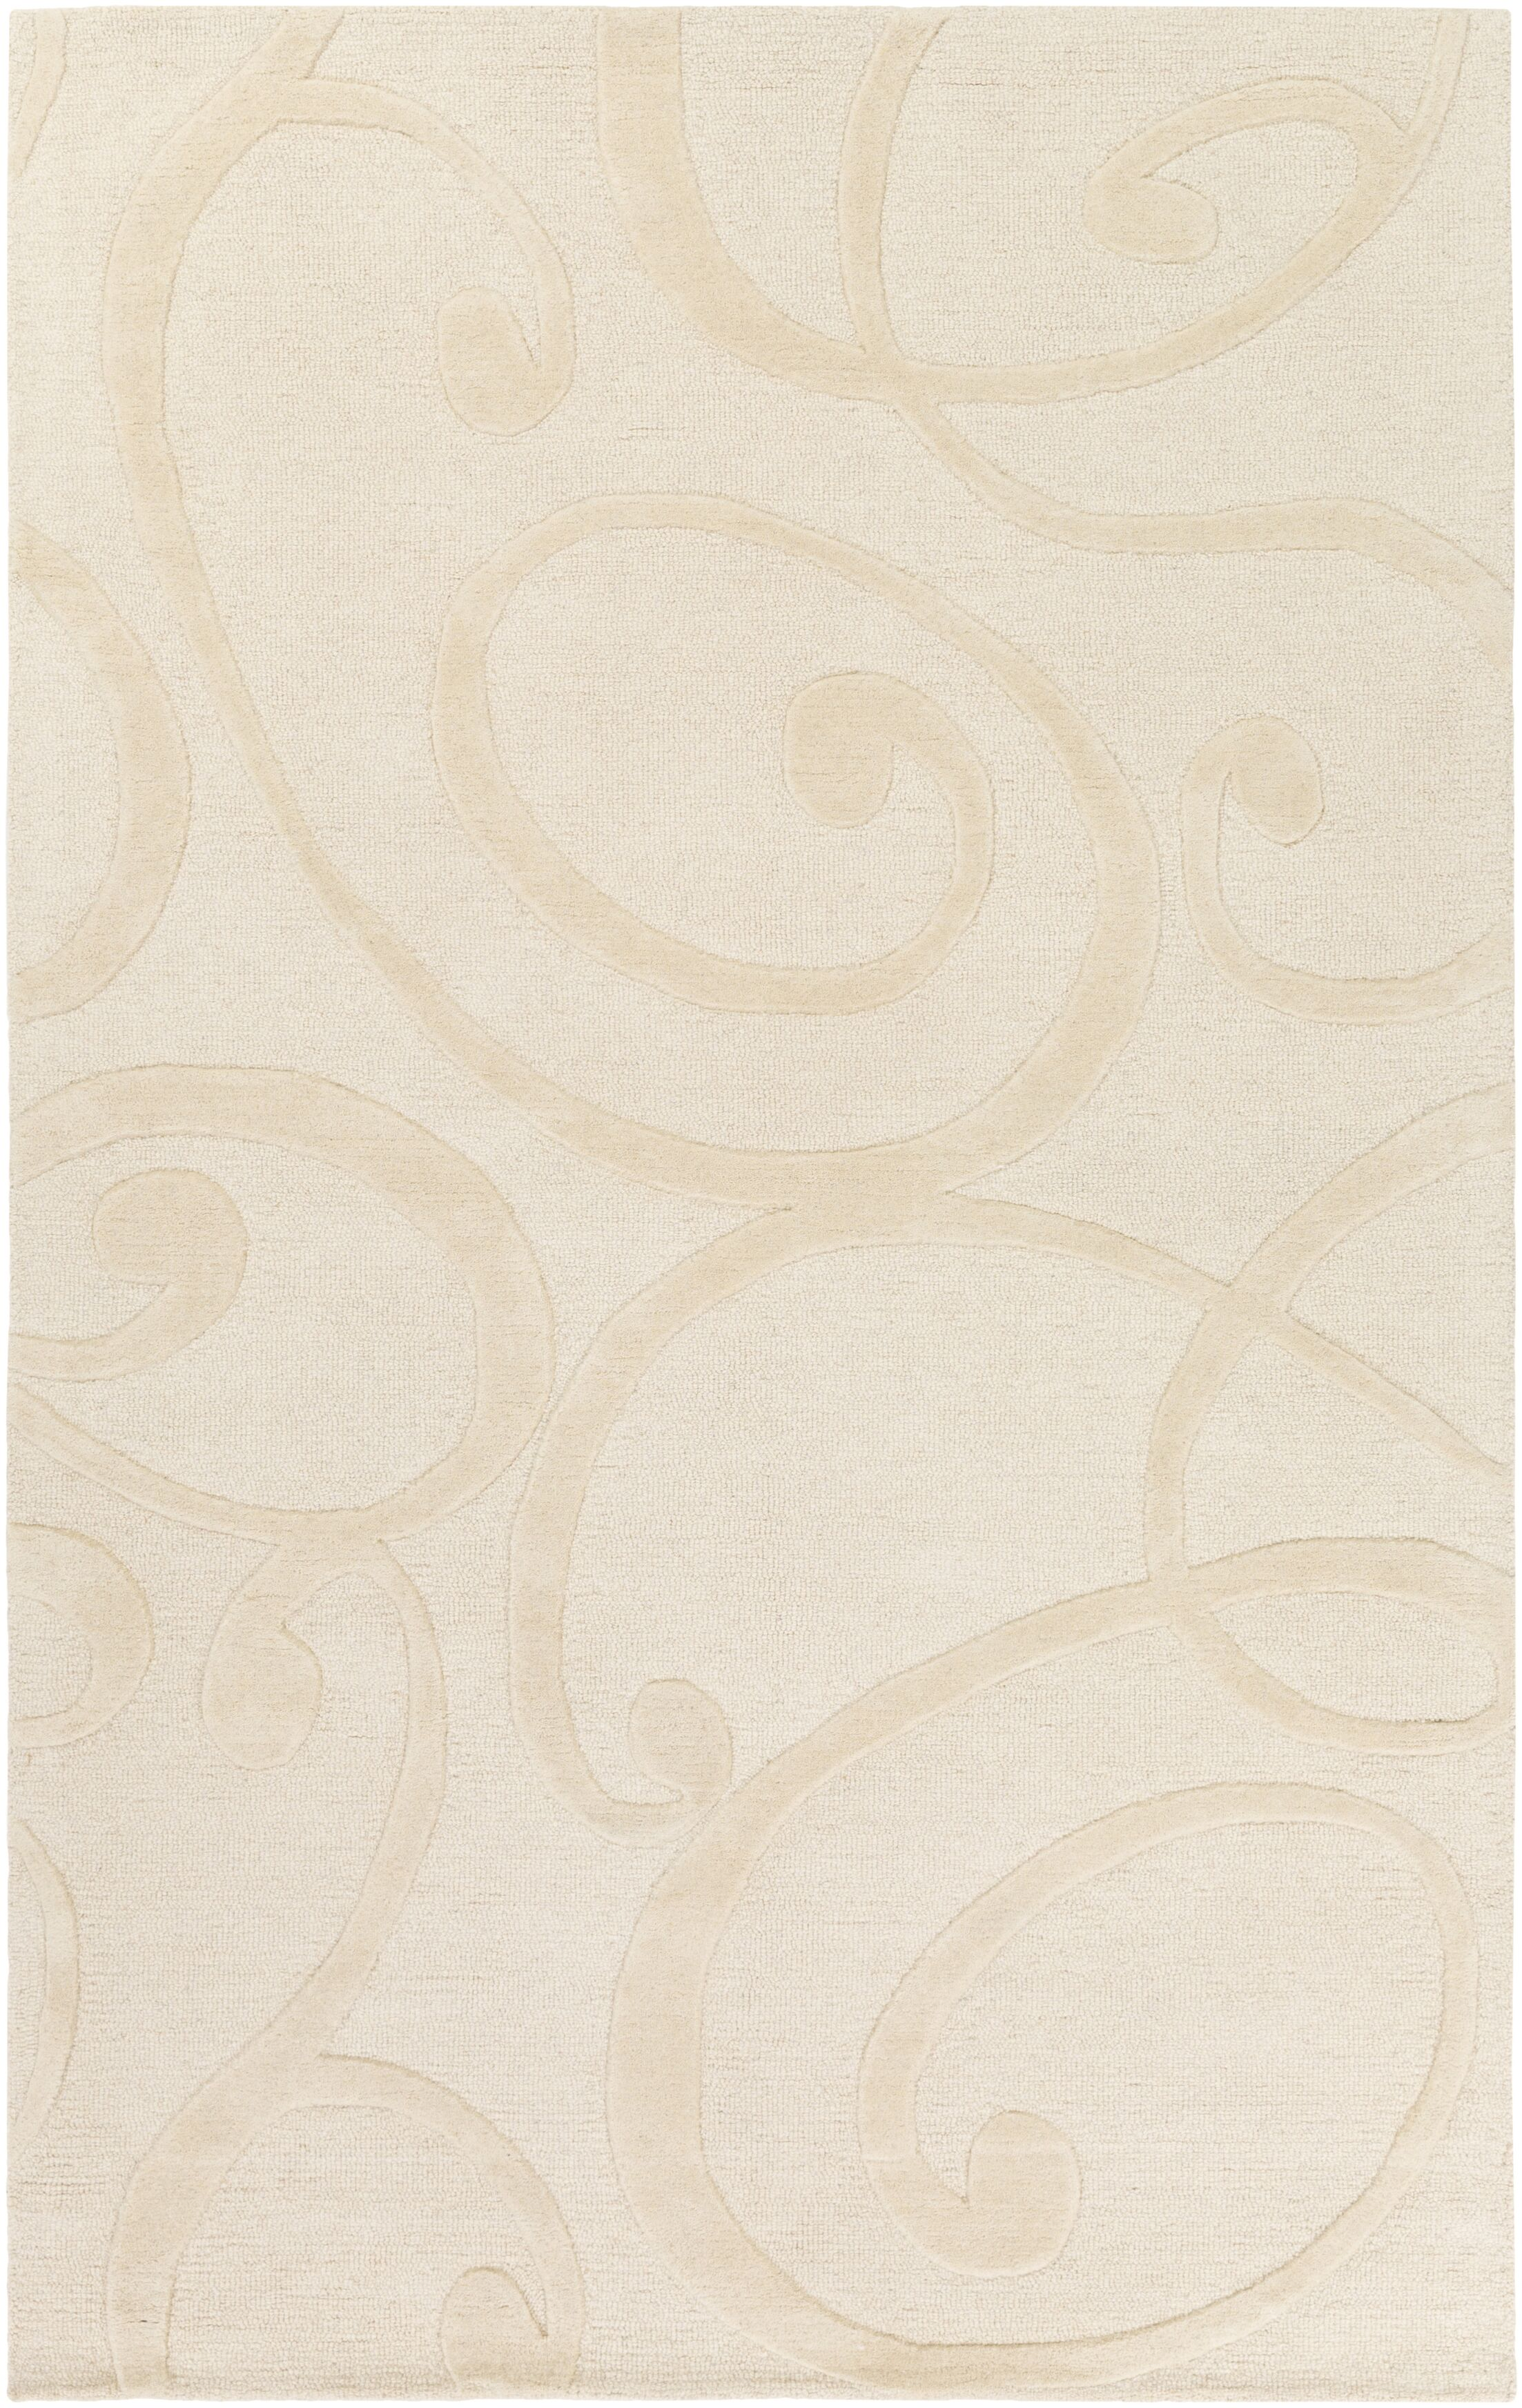 Allegro Hand-Tufted Cream Area Rug Rug Size: Rectangle 4' x 6'